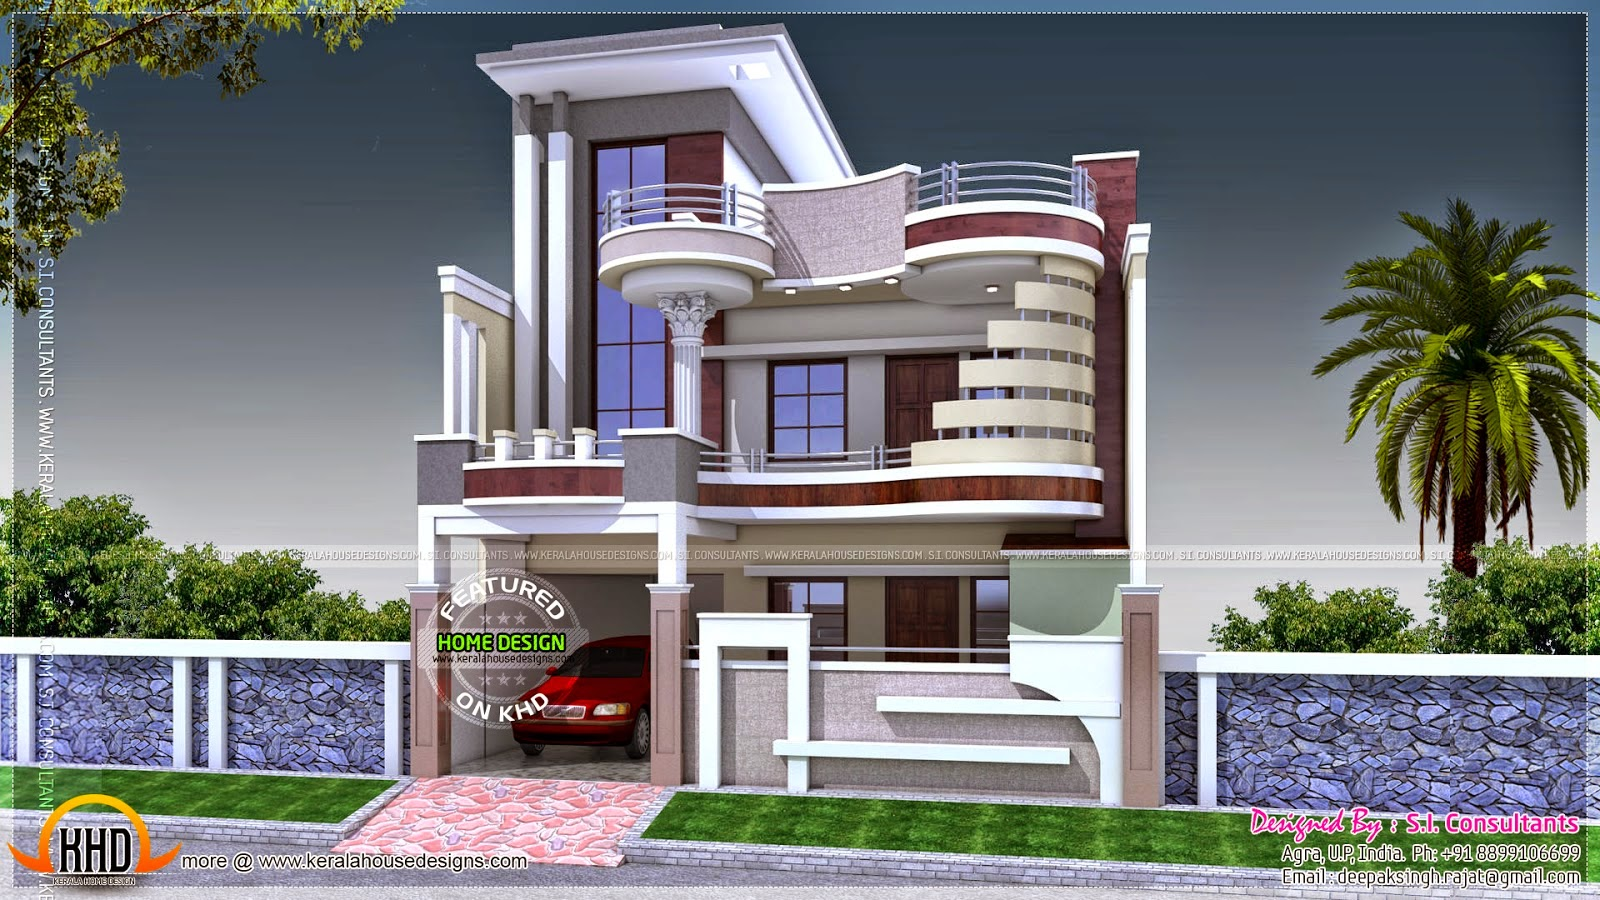 Tropicalizer indian house design Home design house plans